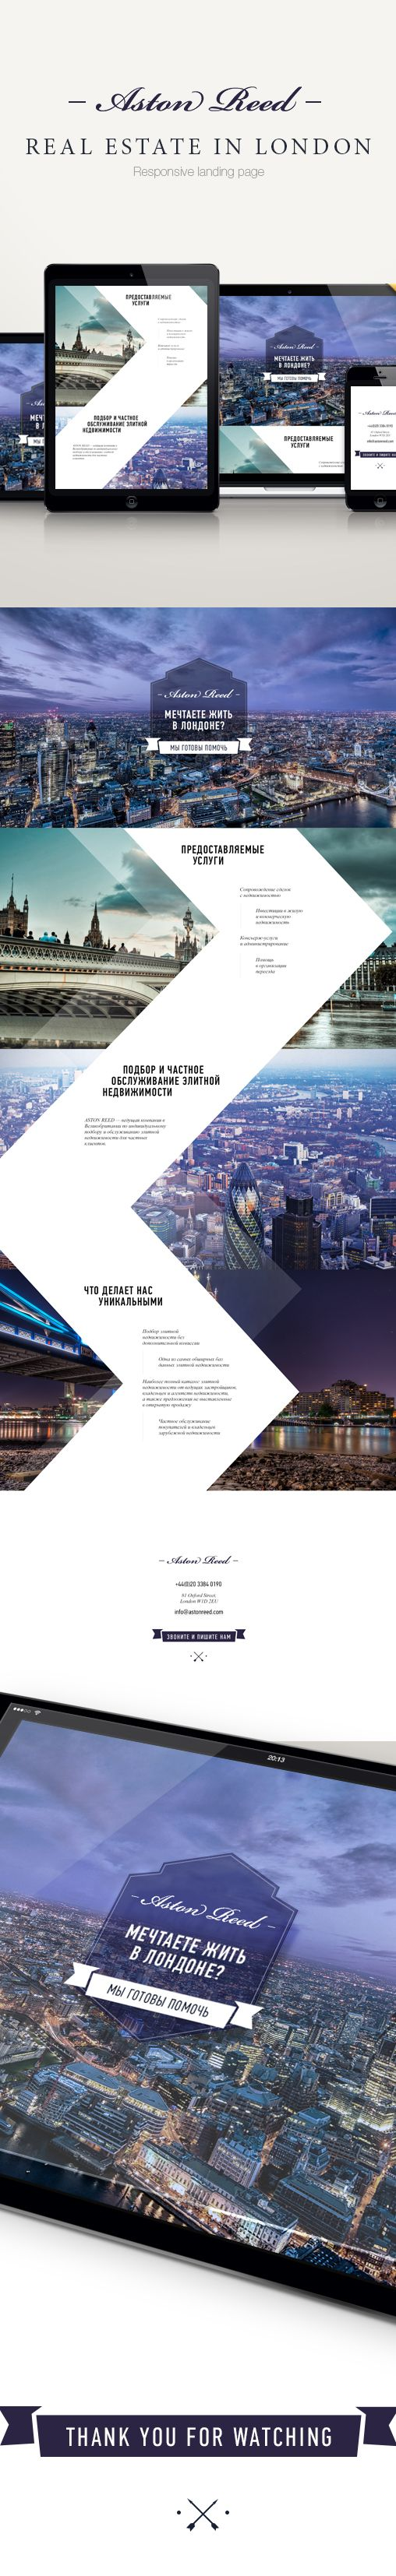 Responsive landing page on Behance